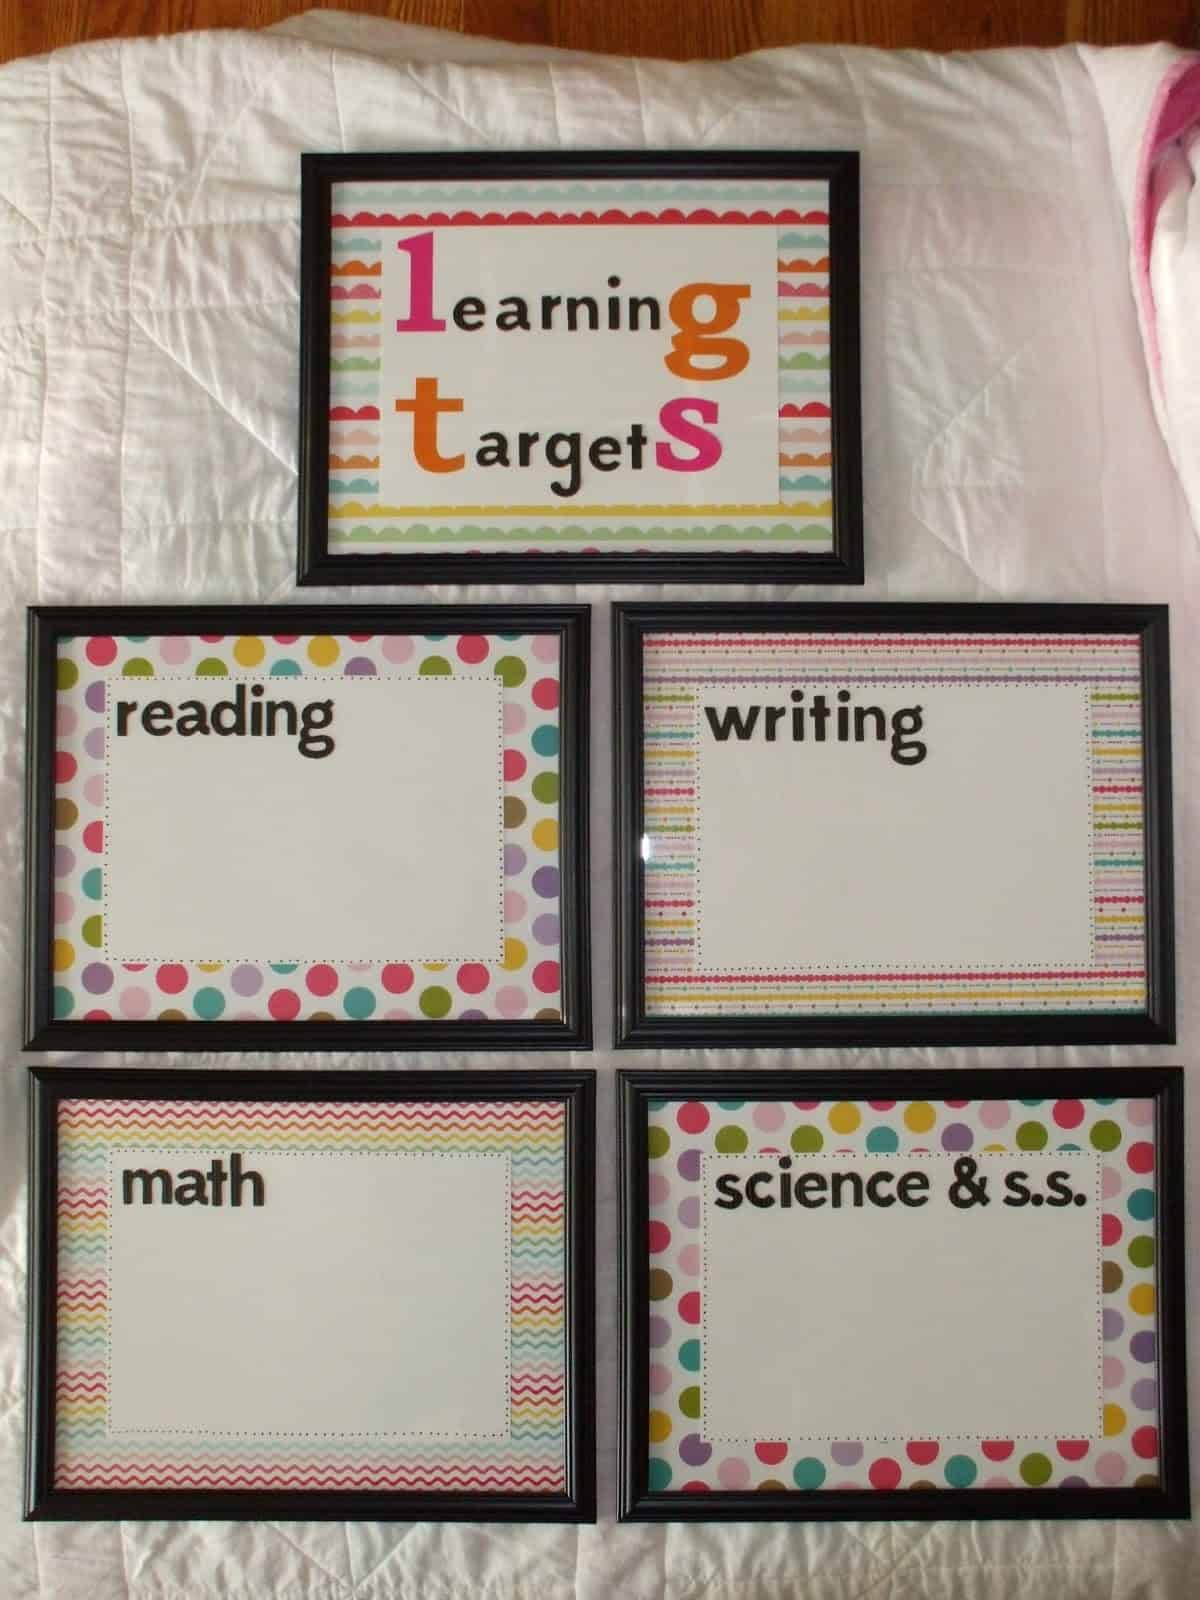 Framed dry erase learning targets for students